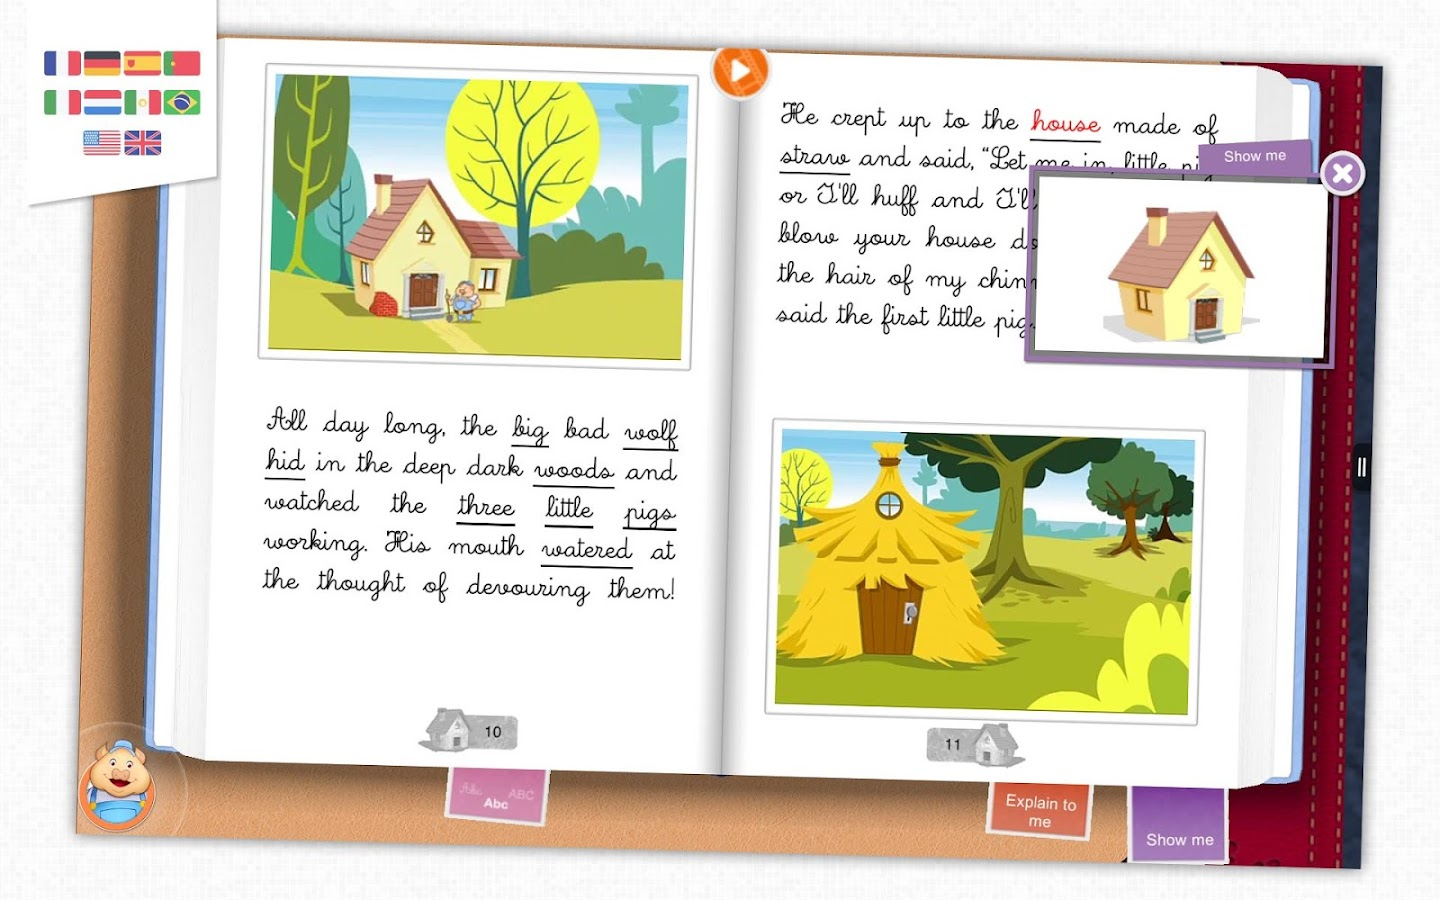 The 3 Little Pigs - Storybook- screenshot